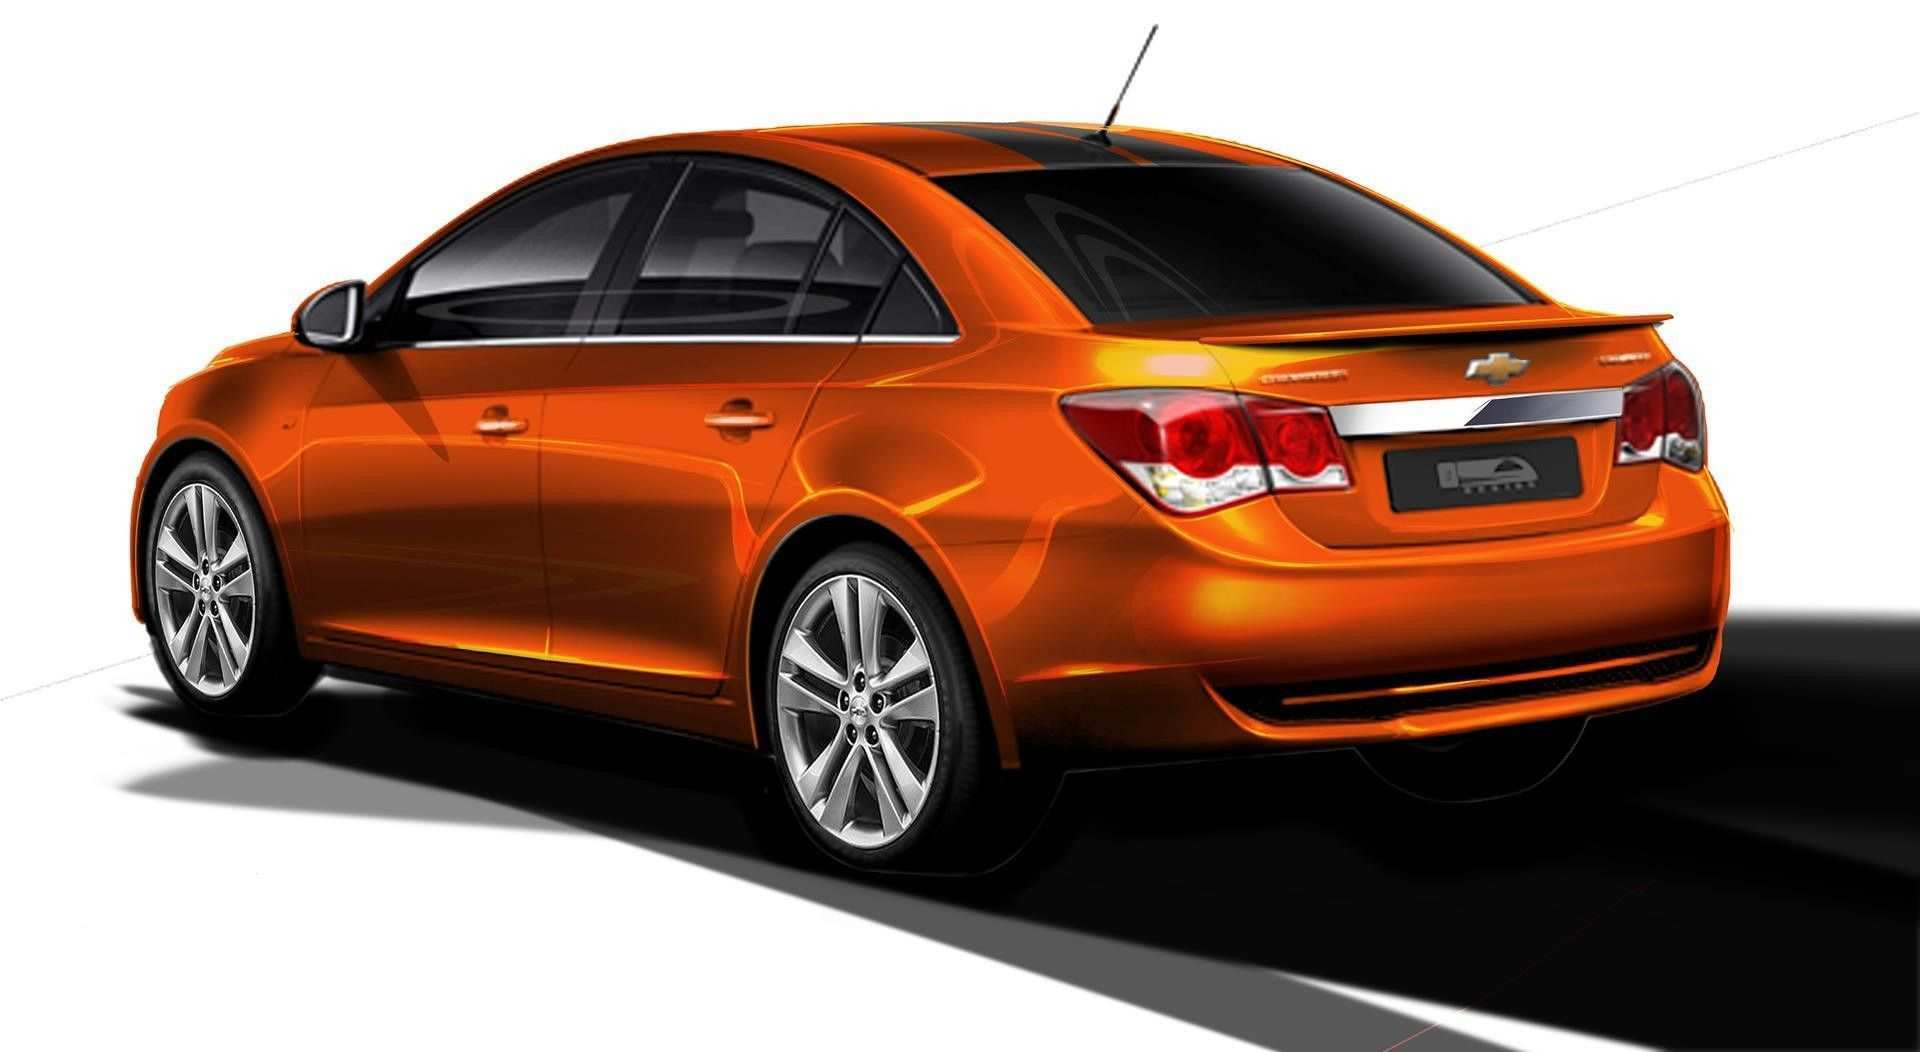 40 The 2020 Chevrolet Cruze Price And Release Date